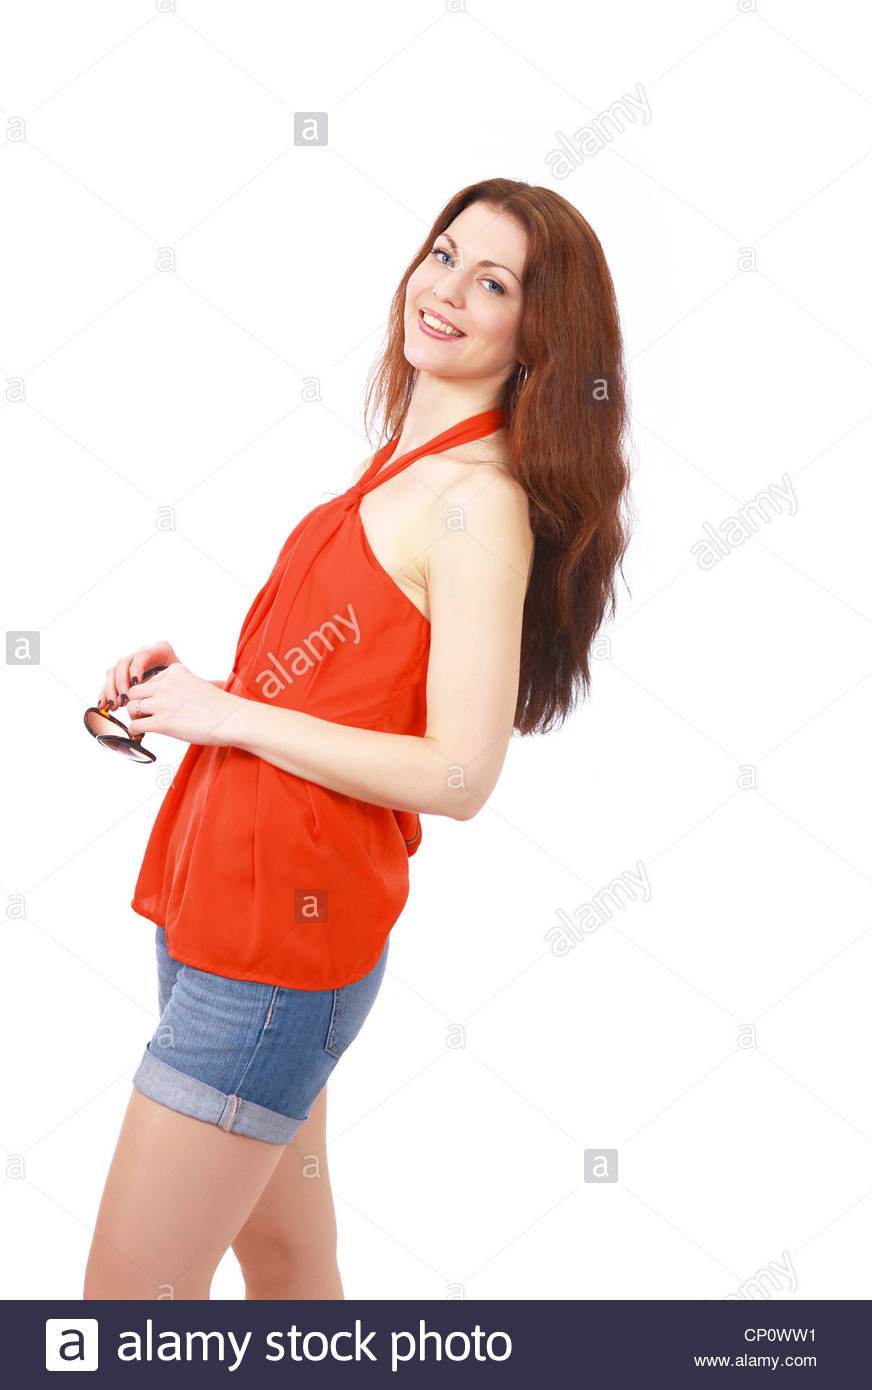 Summer fashion girl in casuals with sunglasses - Stock Image